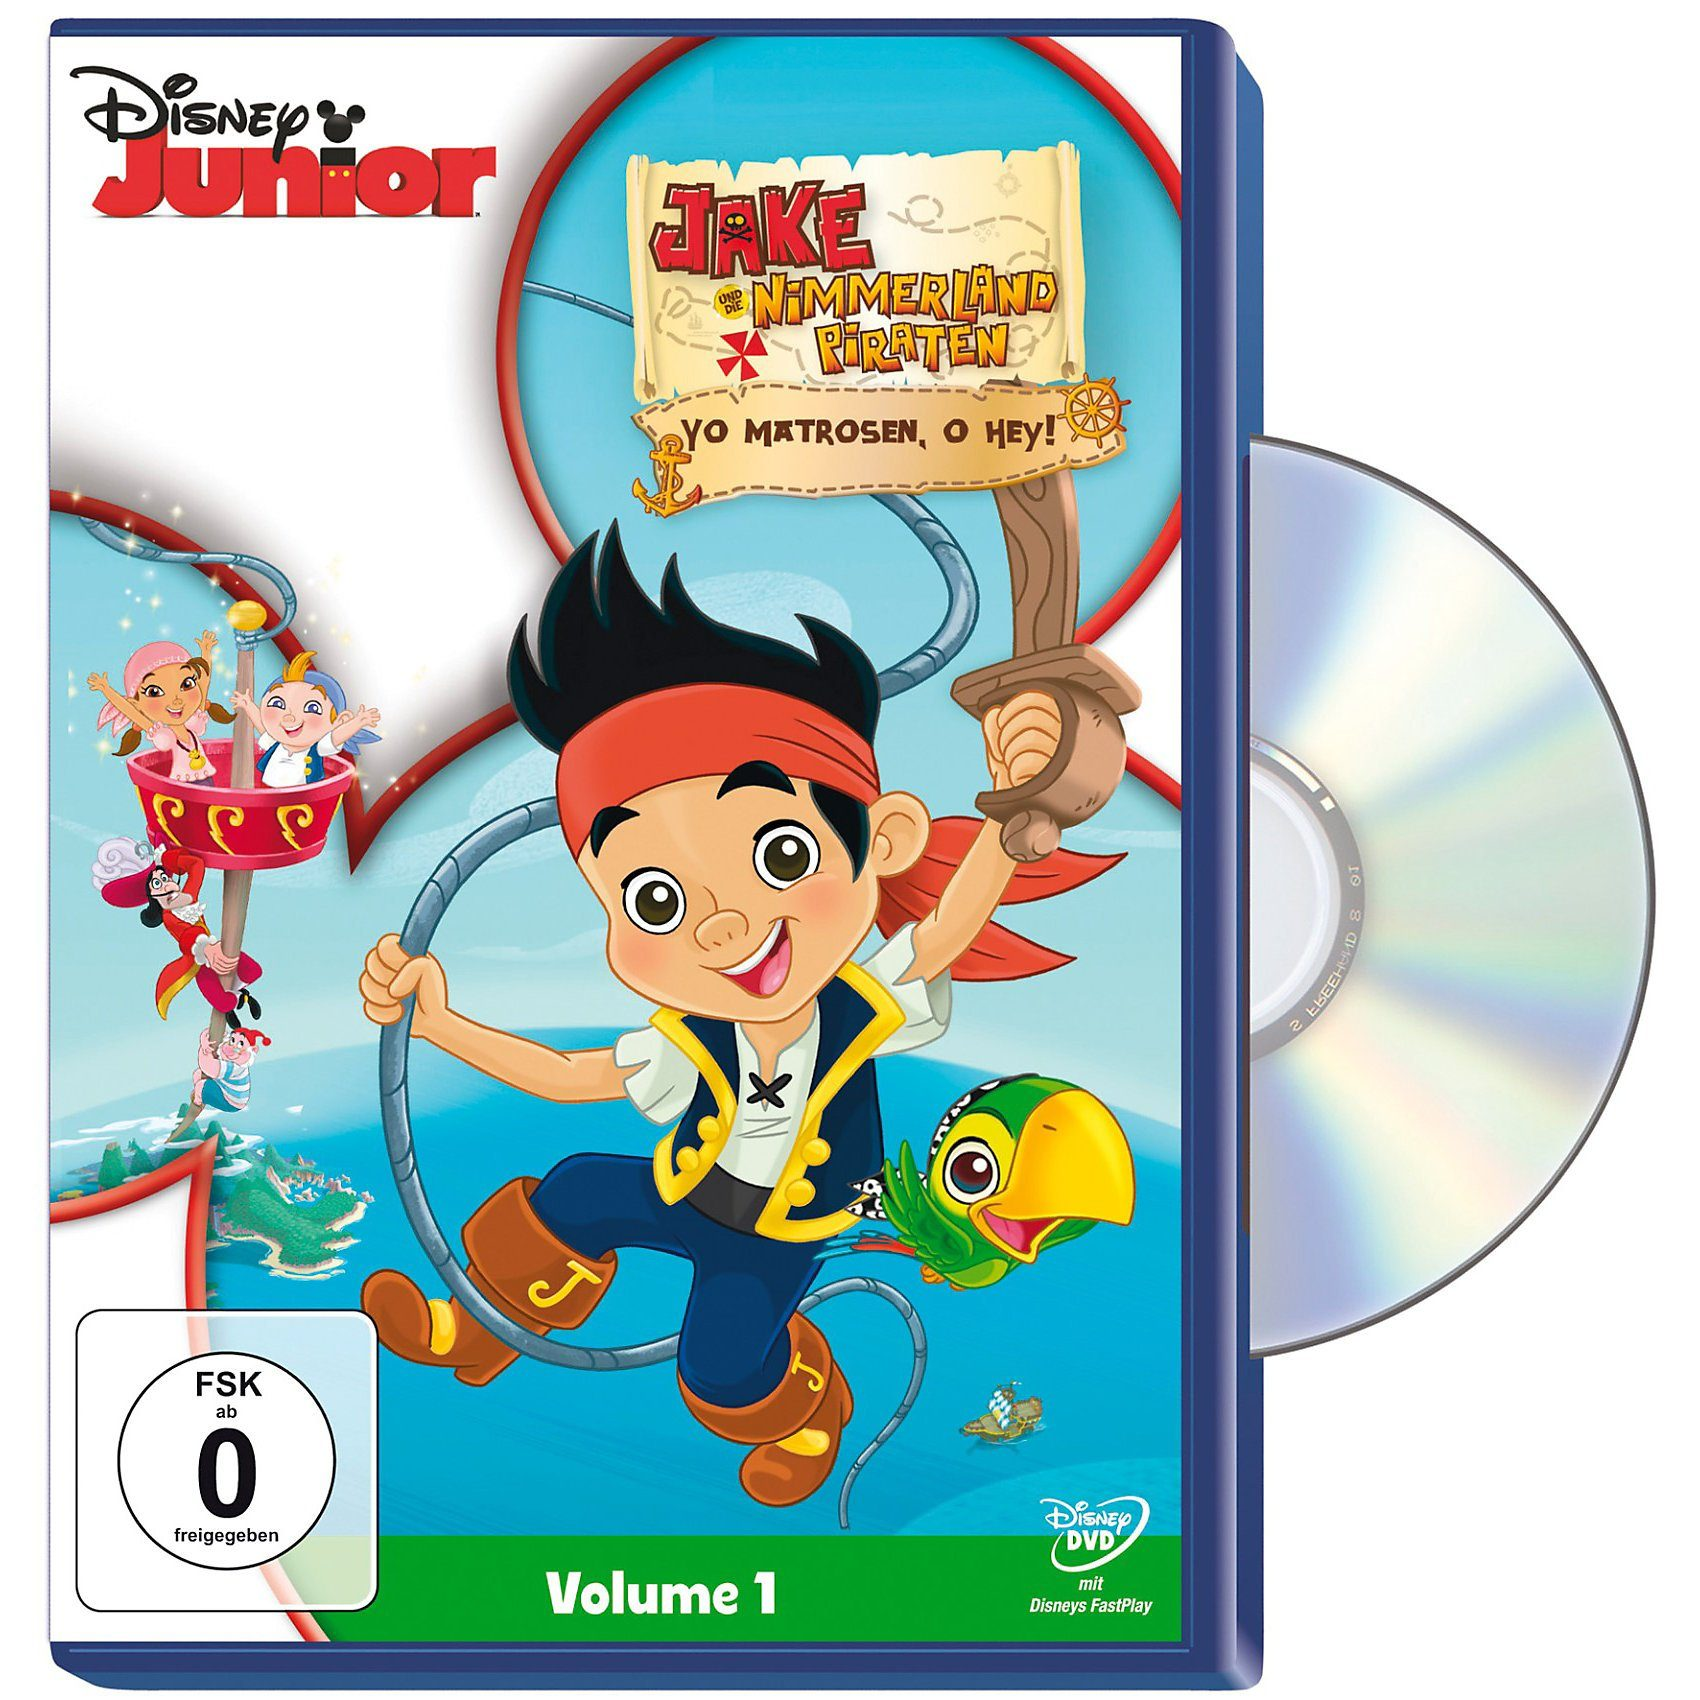 Disney DVD DVD Jake und die Nimmerland Piraten - Yo Matrosen, o hey